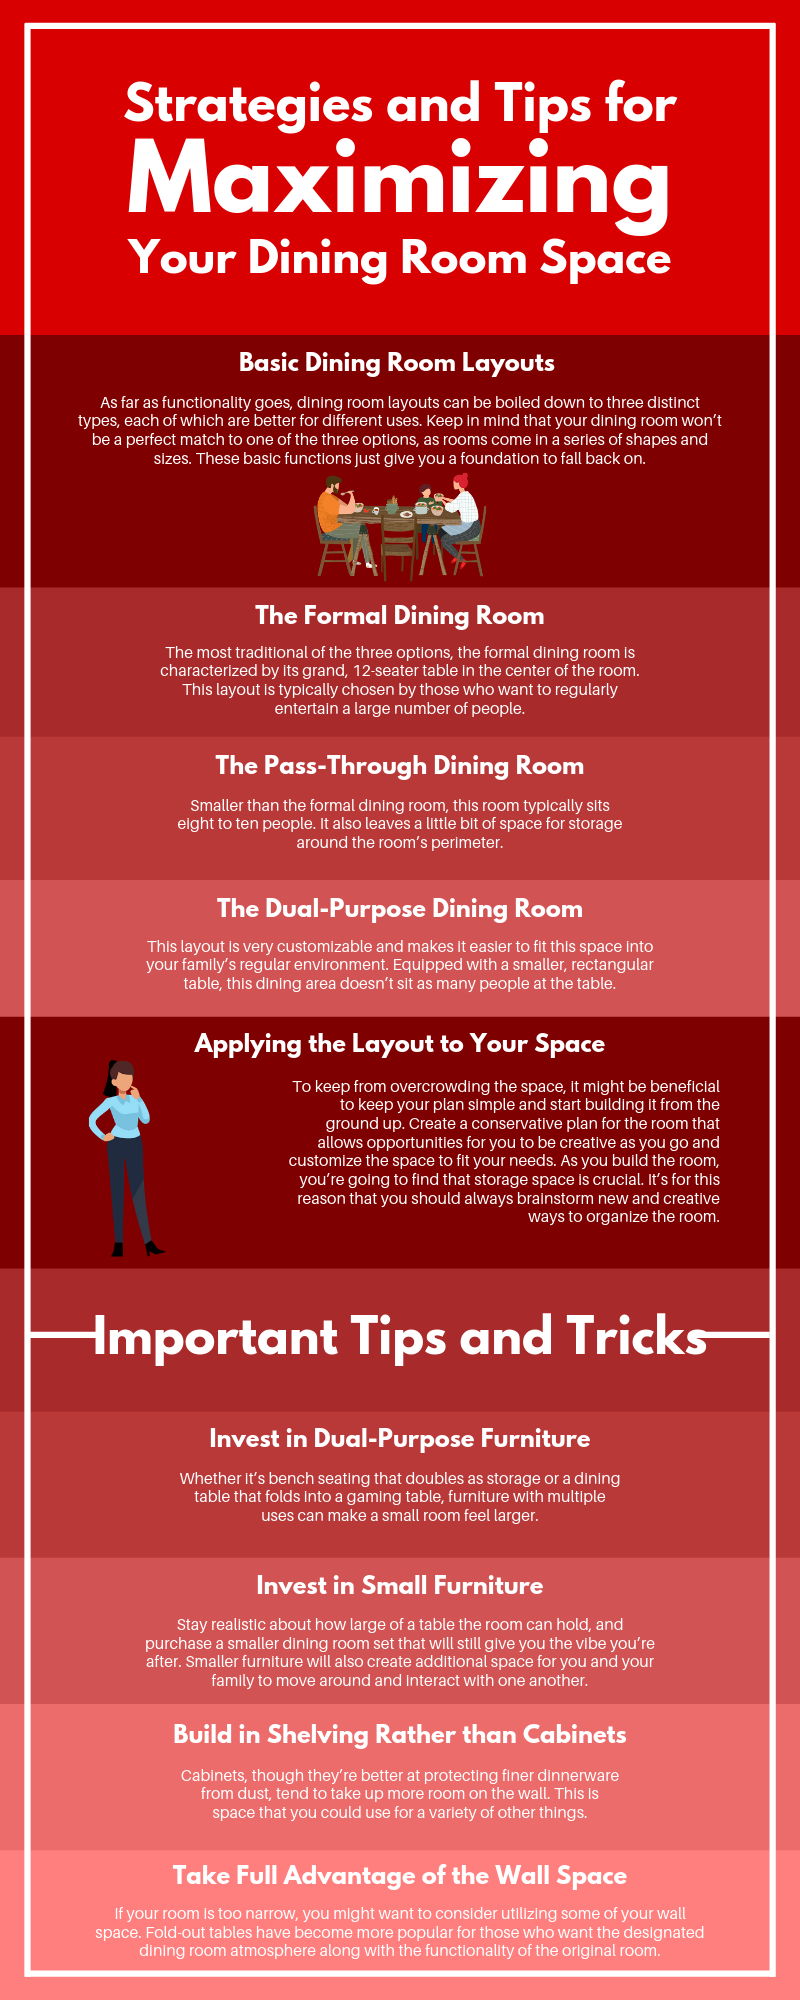 strategies and tips for maximizing your dining room space infographic